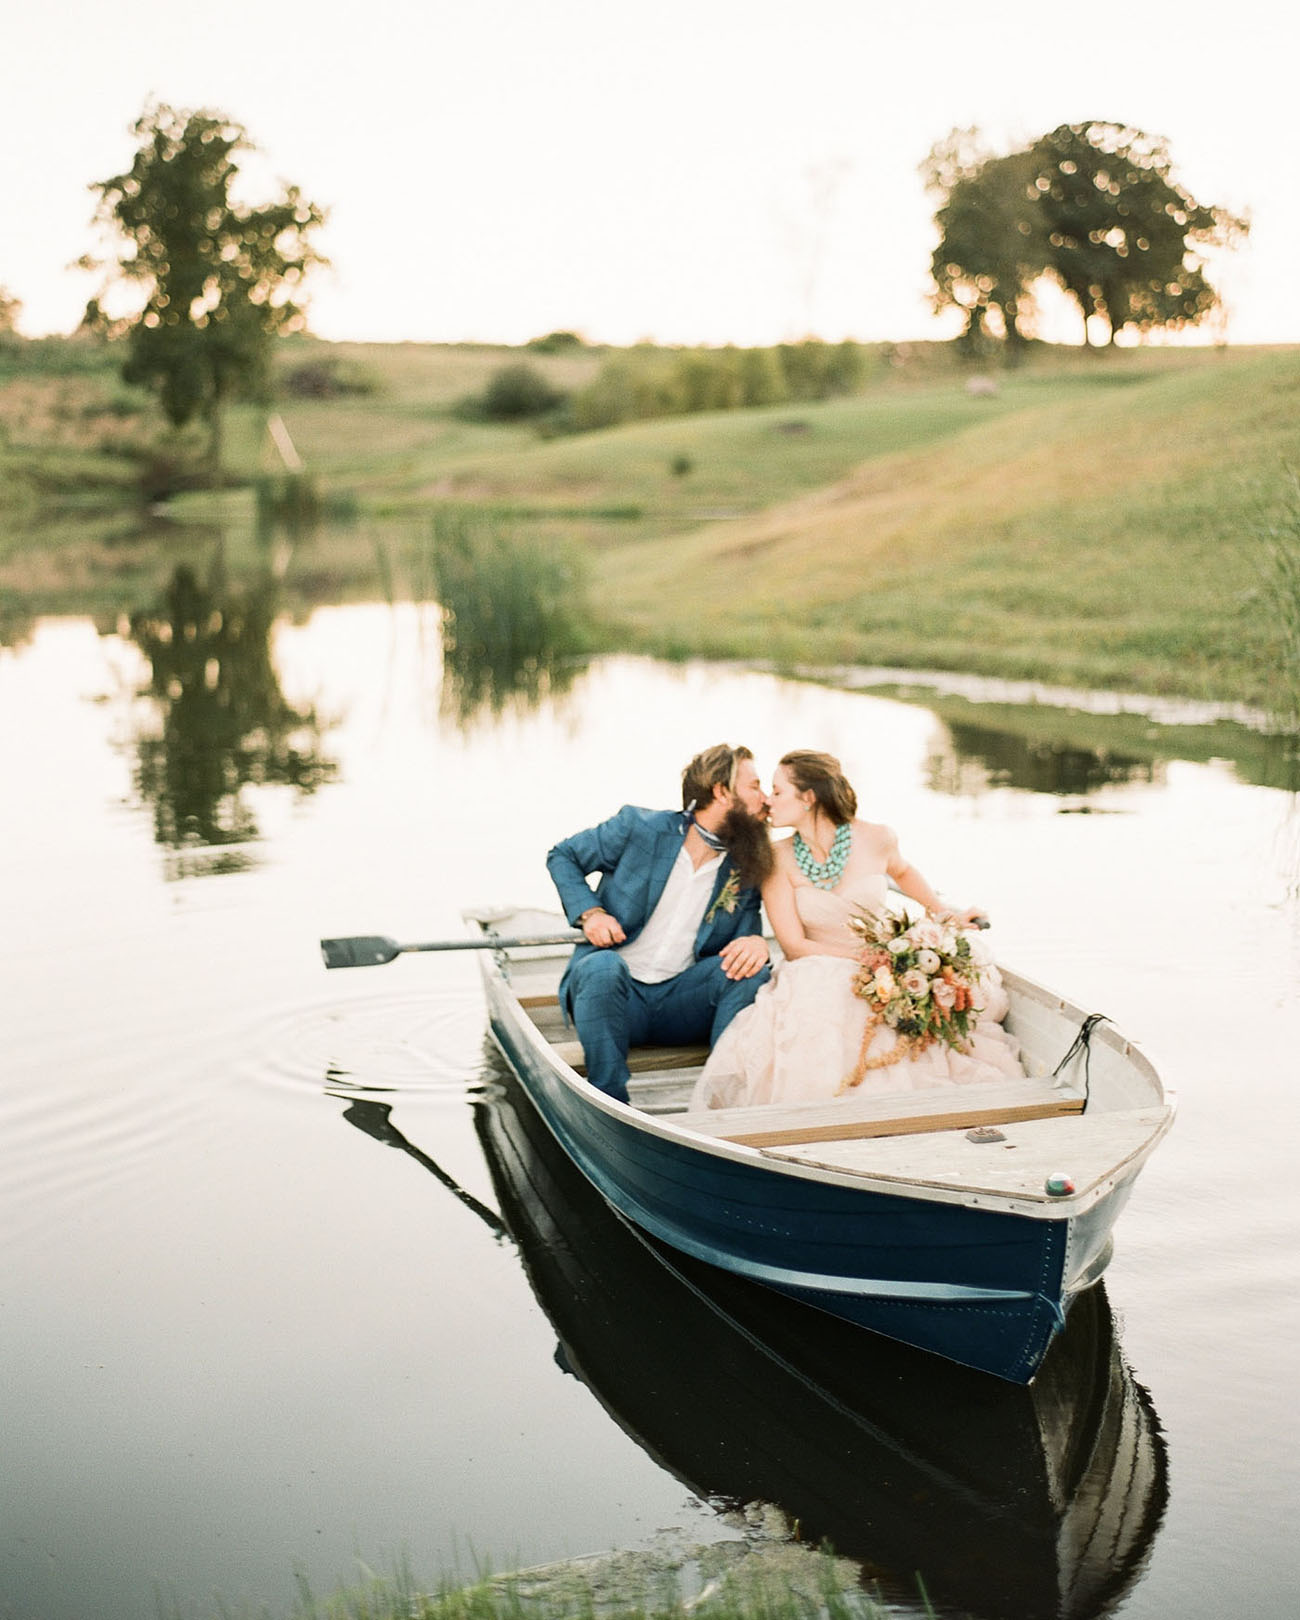 Of course there can't be no boat shot at a lake wedding